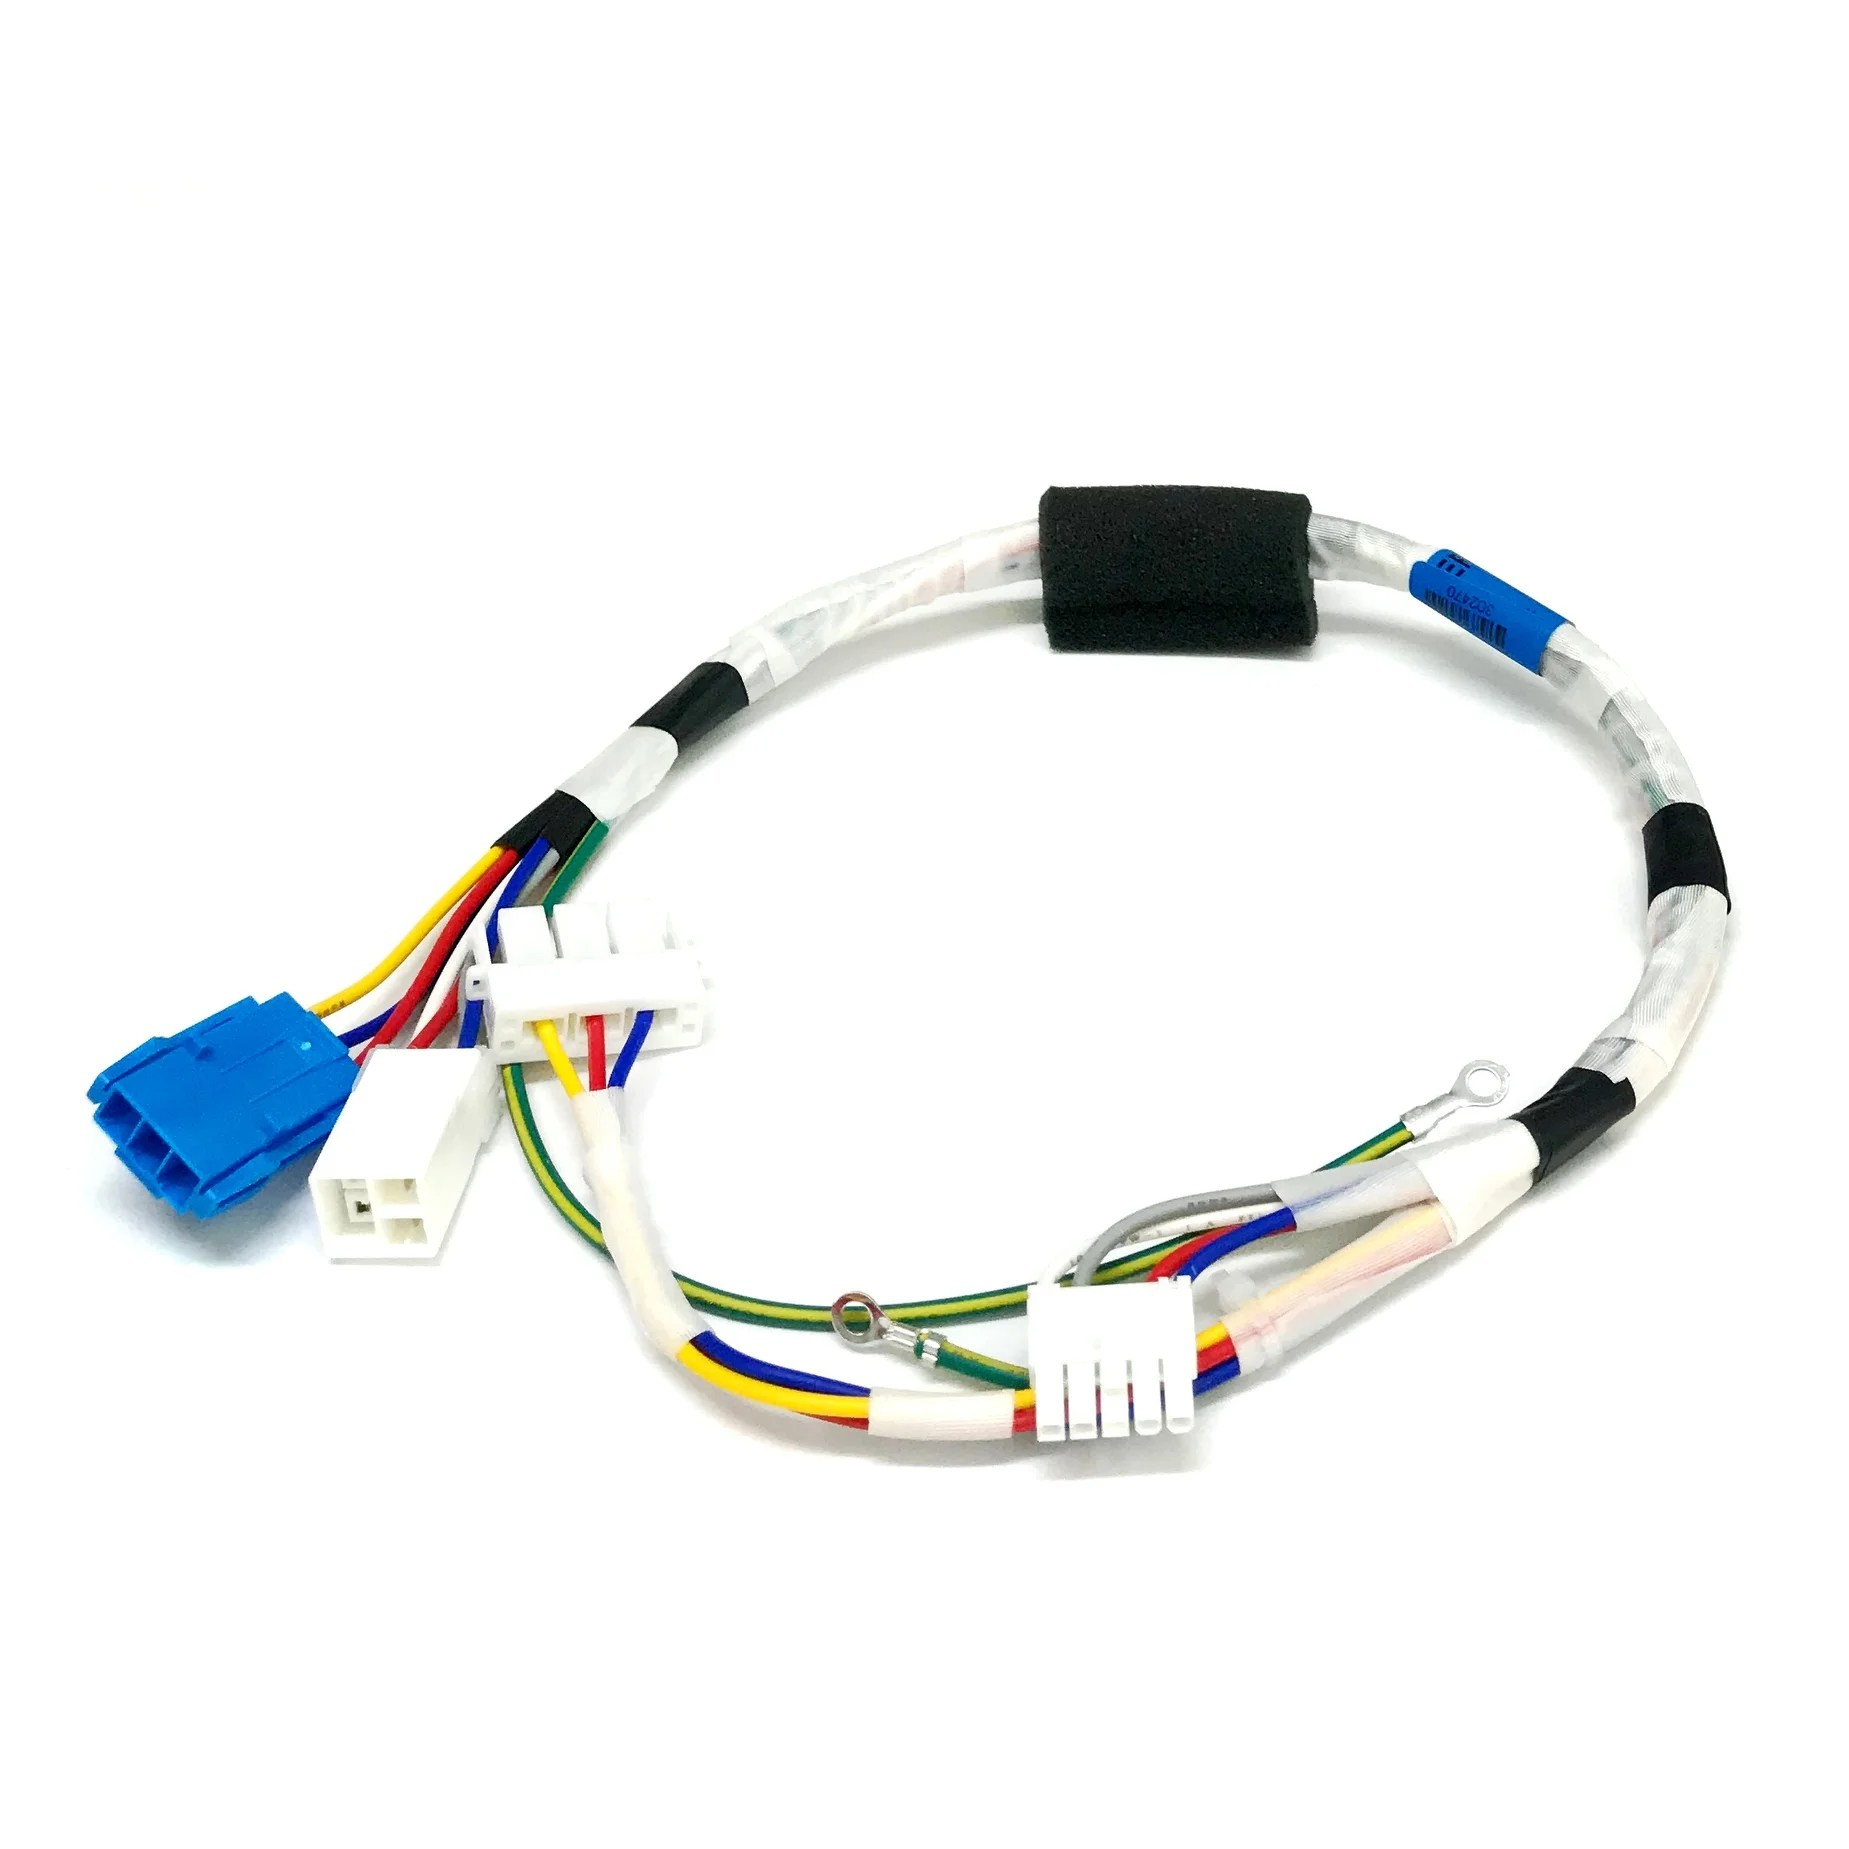 hight resolution of wire diagram for whirlpool dryer ler6611pq0